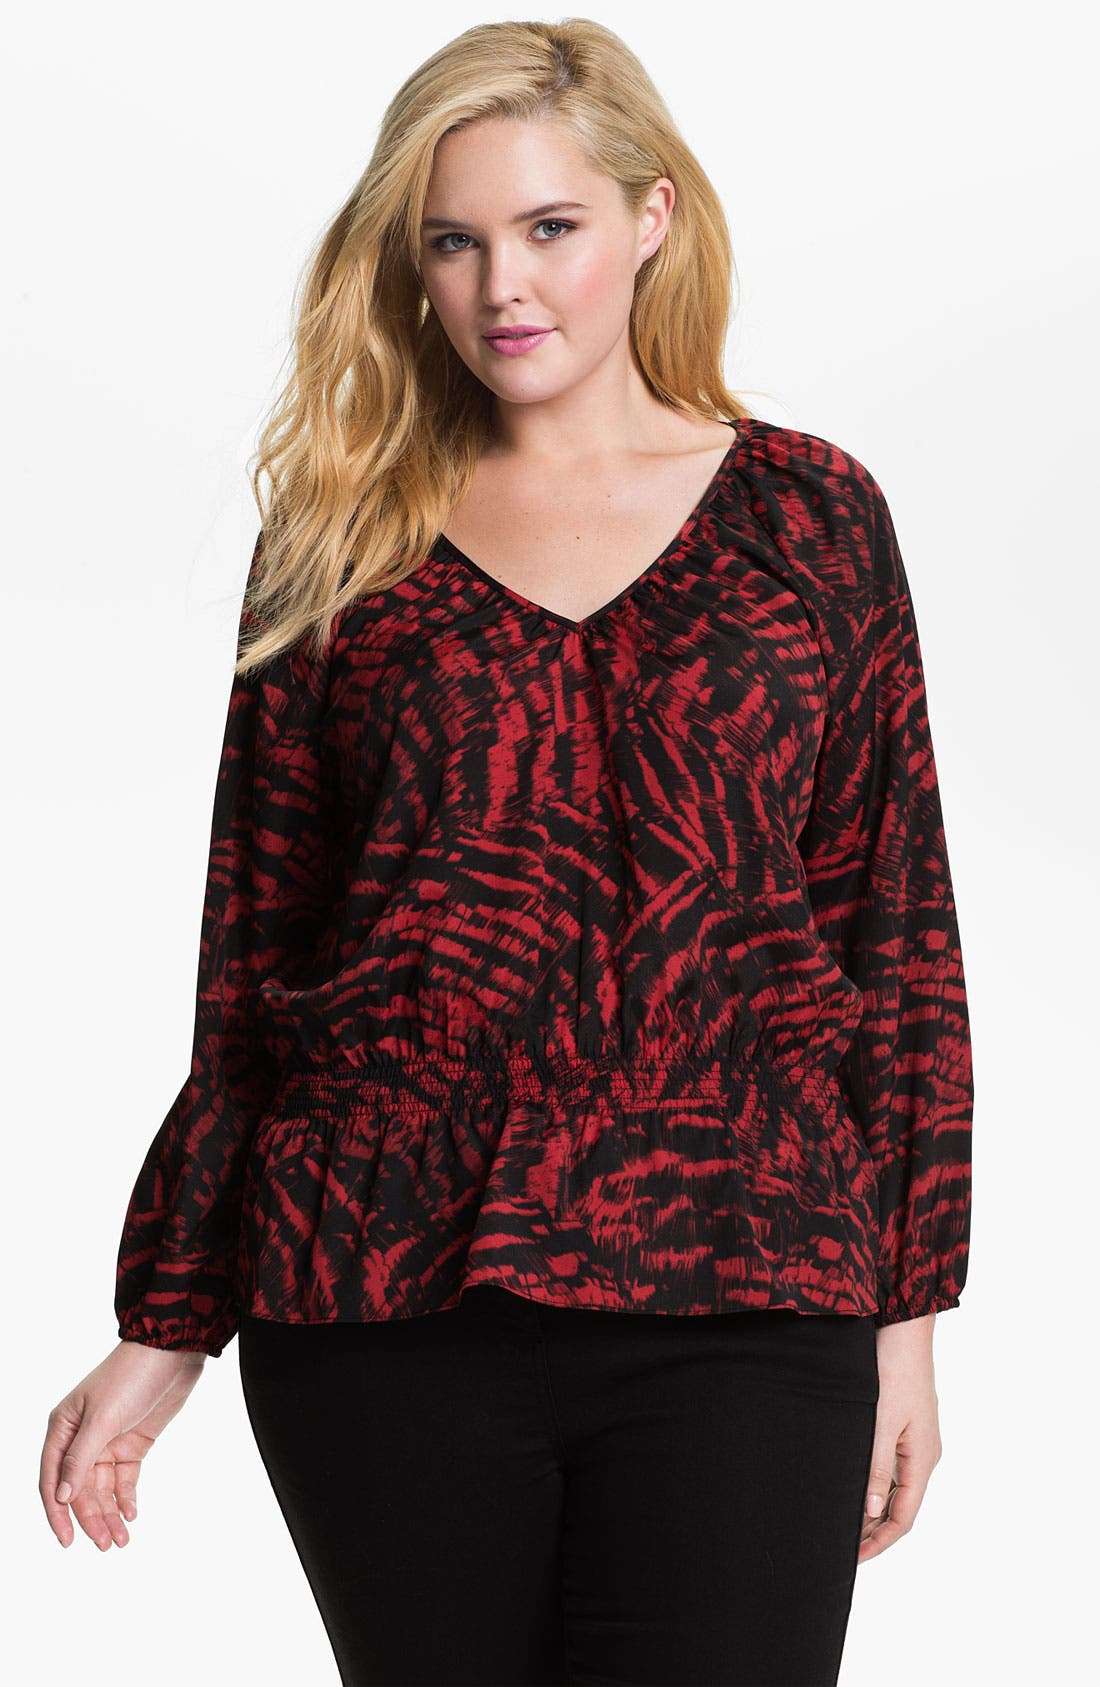 Alternate Image 1 Selected - MICHAEL Michael Kors 'Fantail' Peasant Top (Plus)